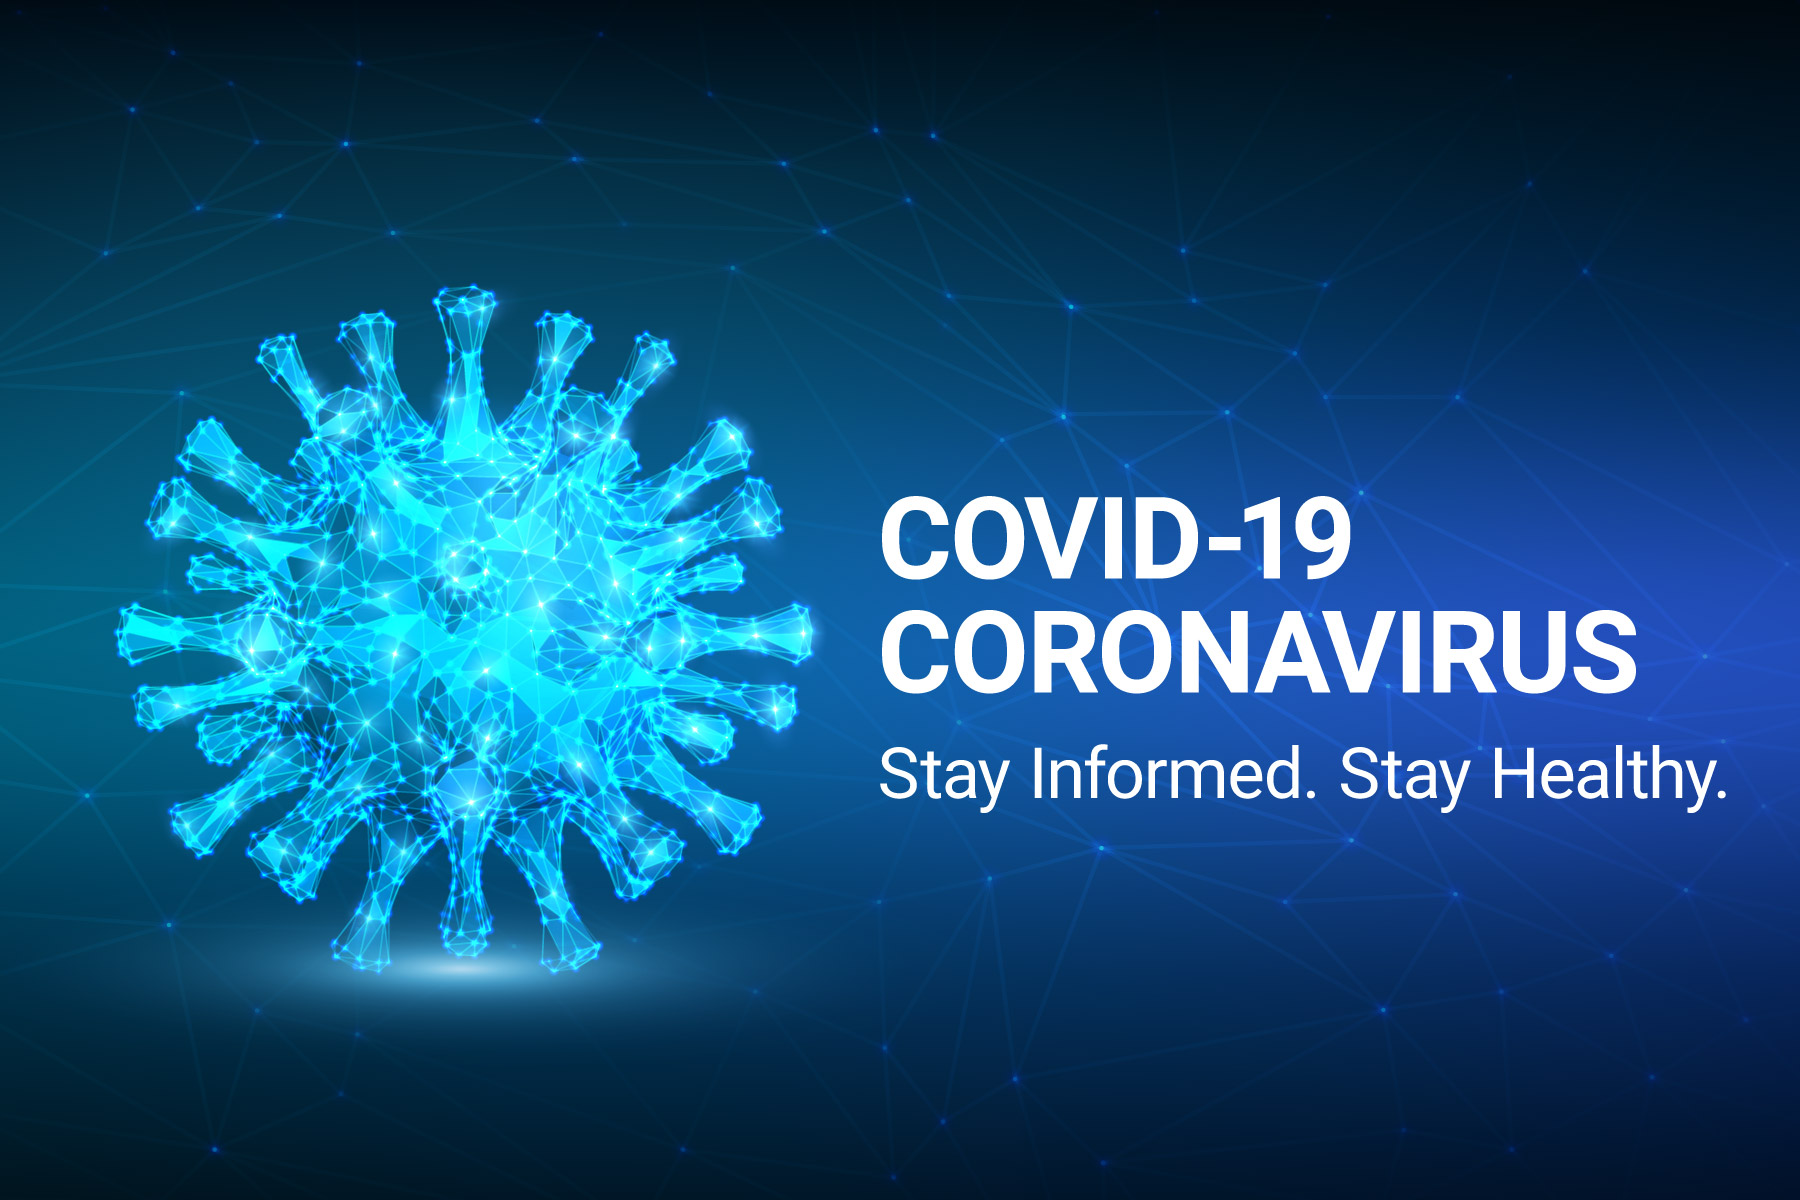 249 new Covid-19 cases reported in Telangana